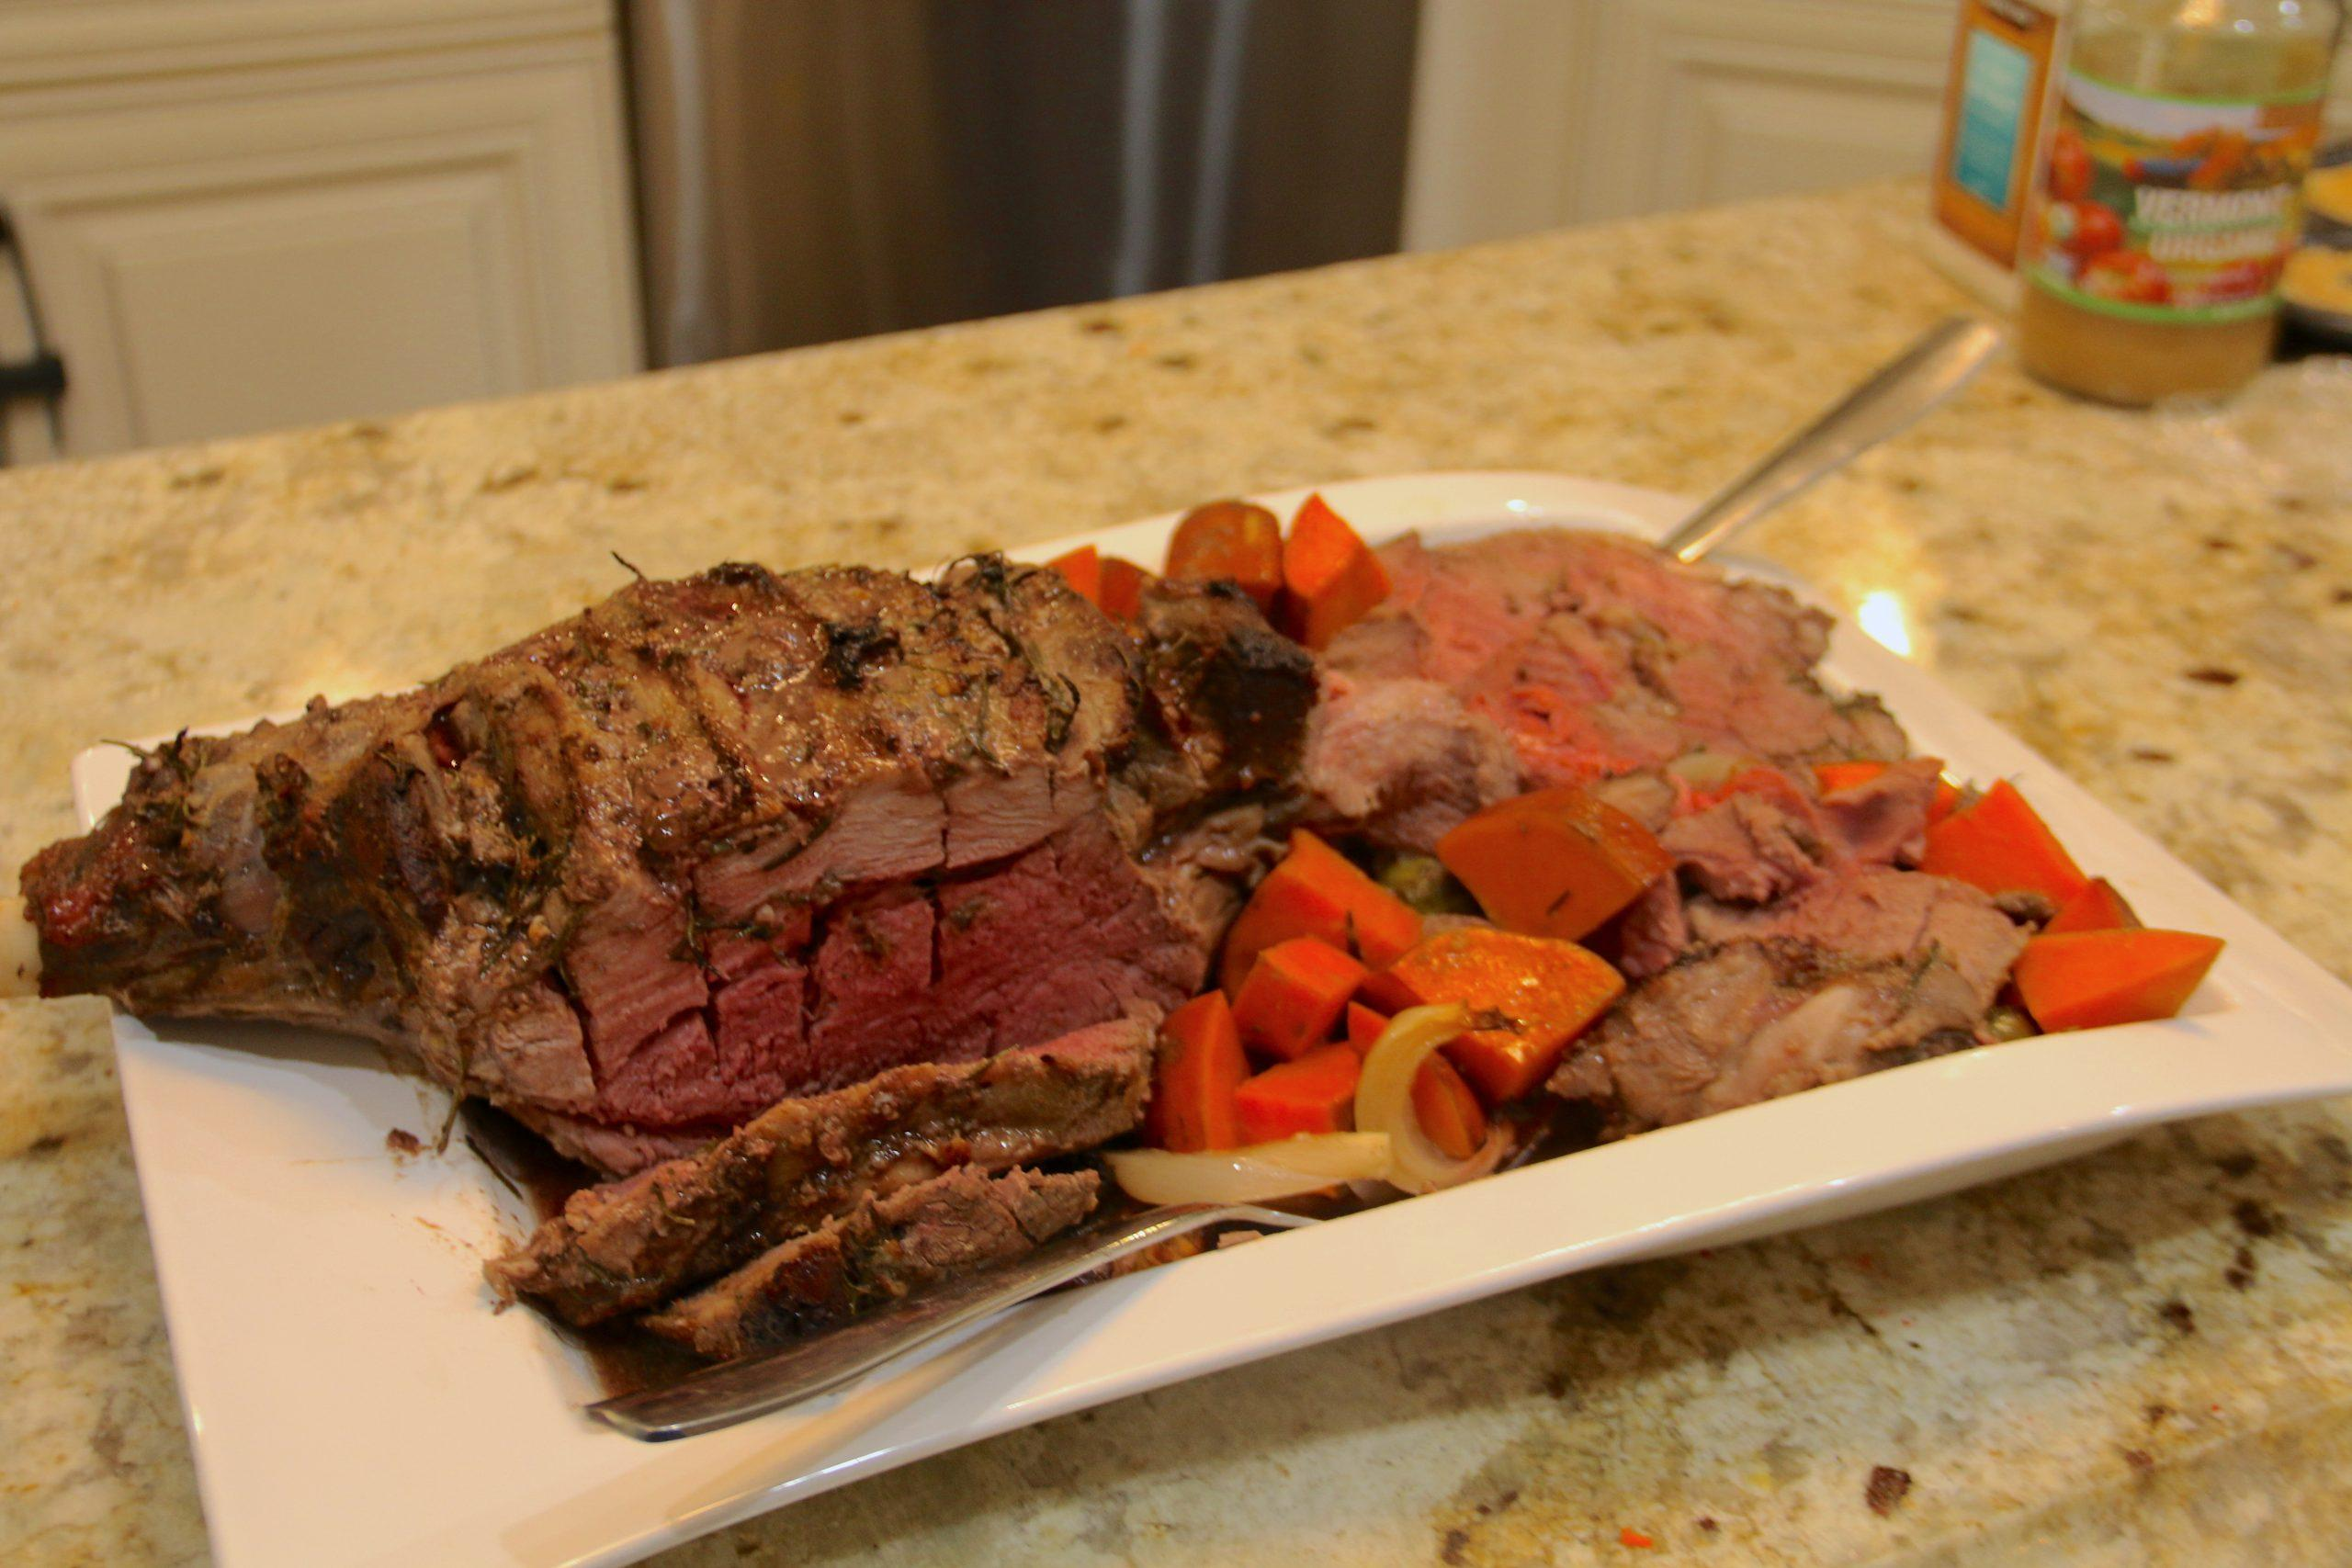 Garlic and rosemary come together for an amazing flavor combination in this roast leg of lamb recipe. Perfect for family dinner or celebrating the holidays.